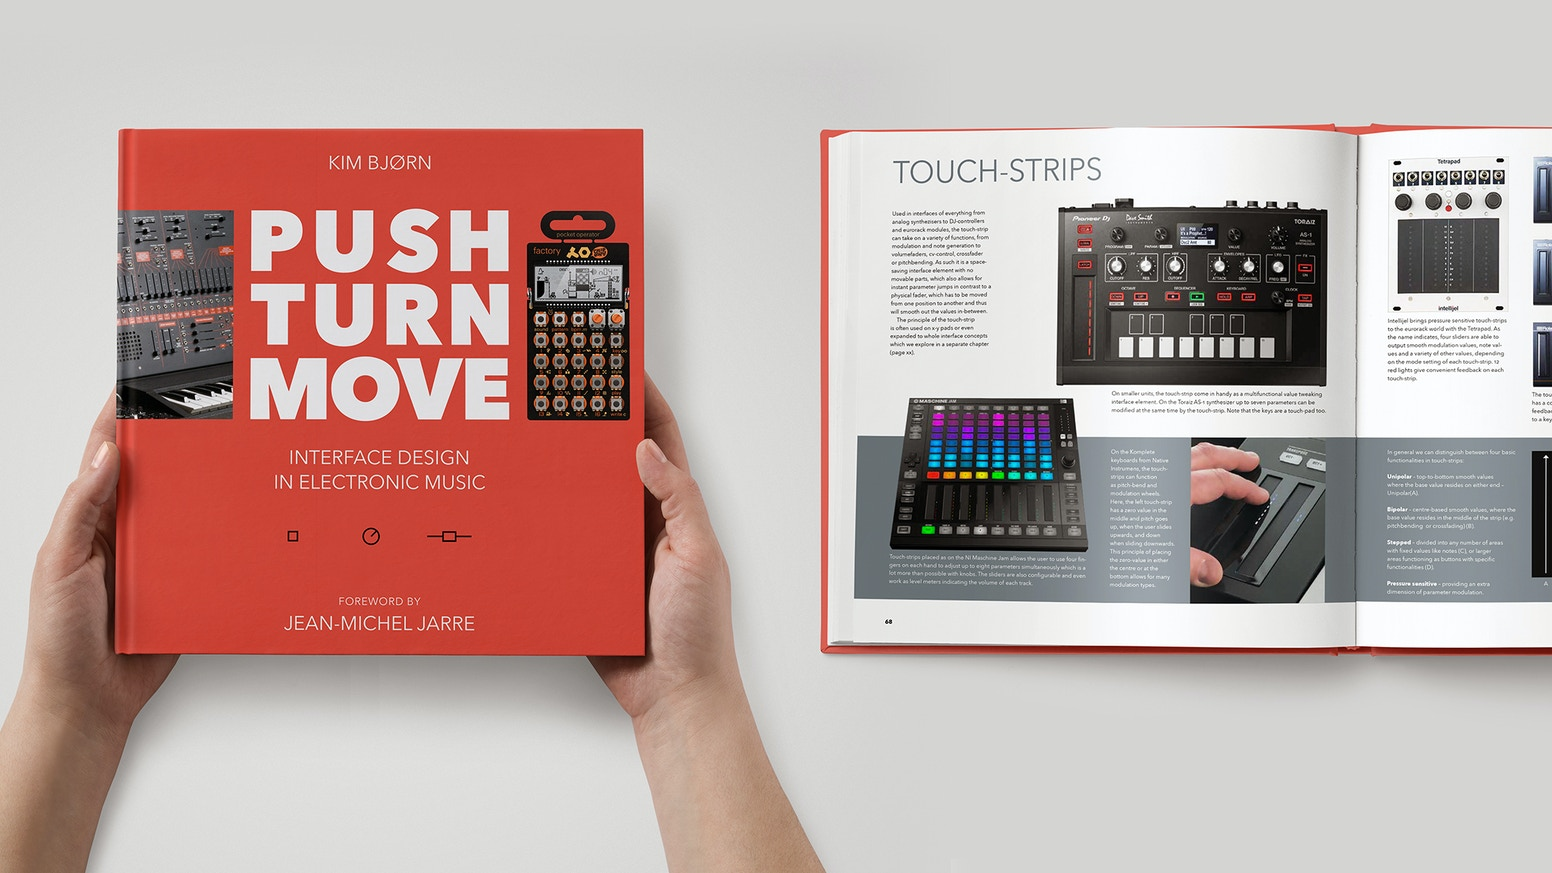 PUSH TURN MOVE - the book about electronic music instruments